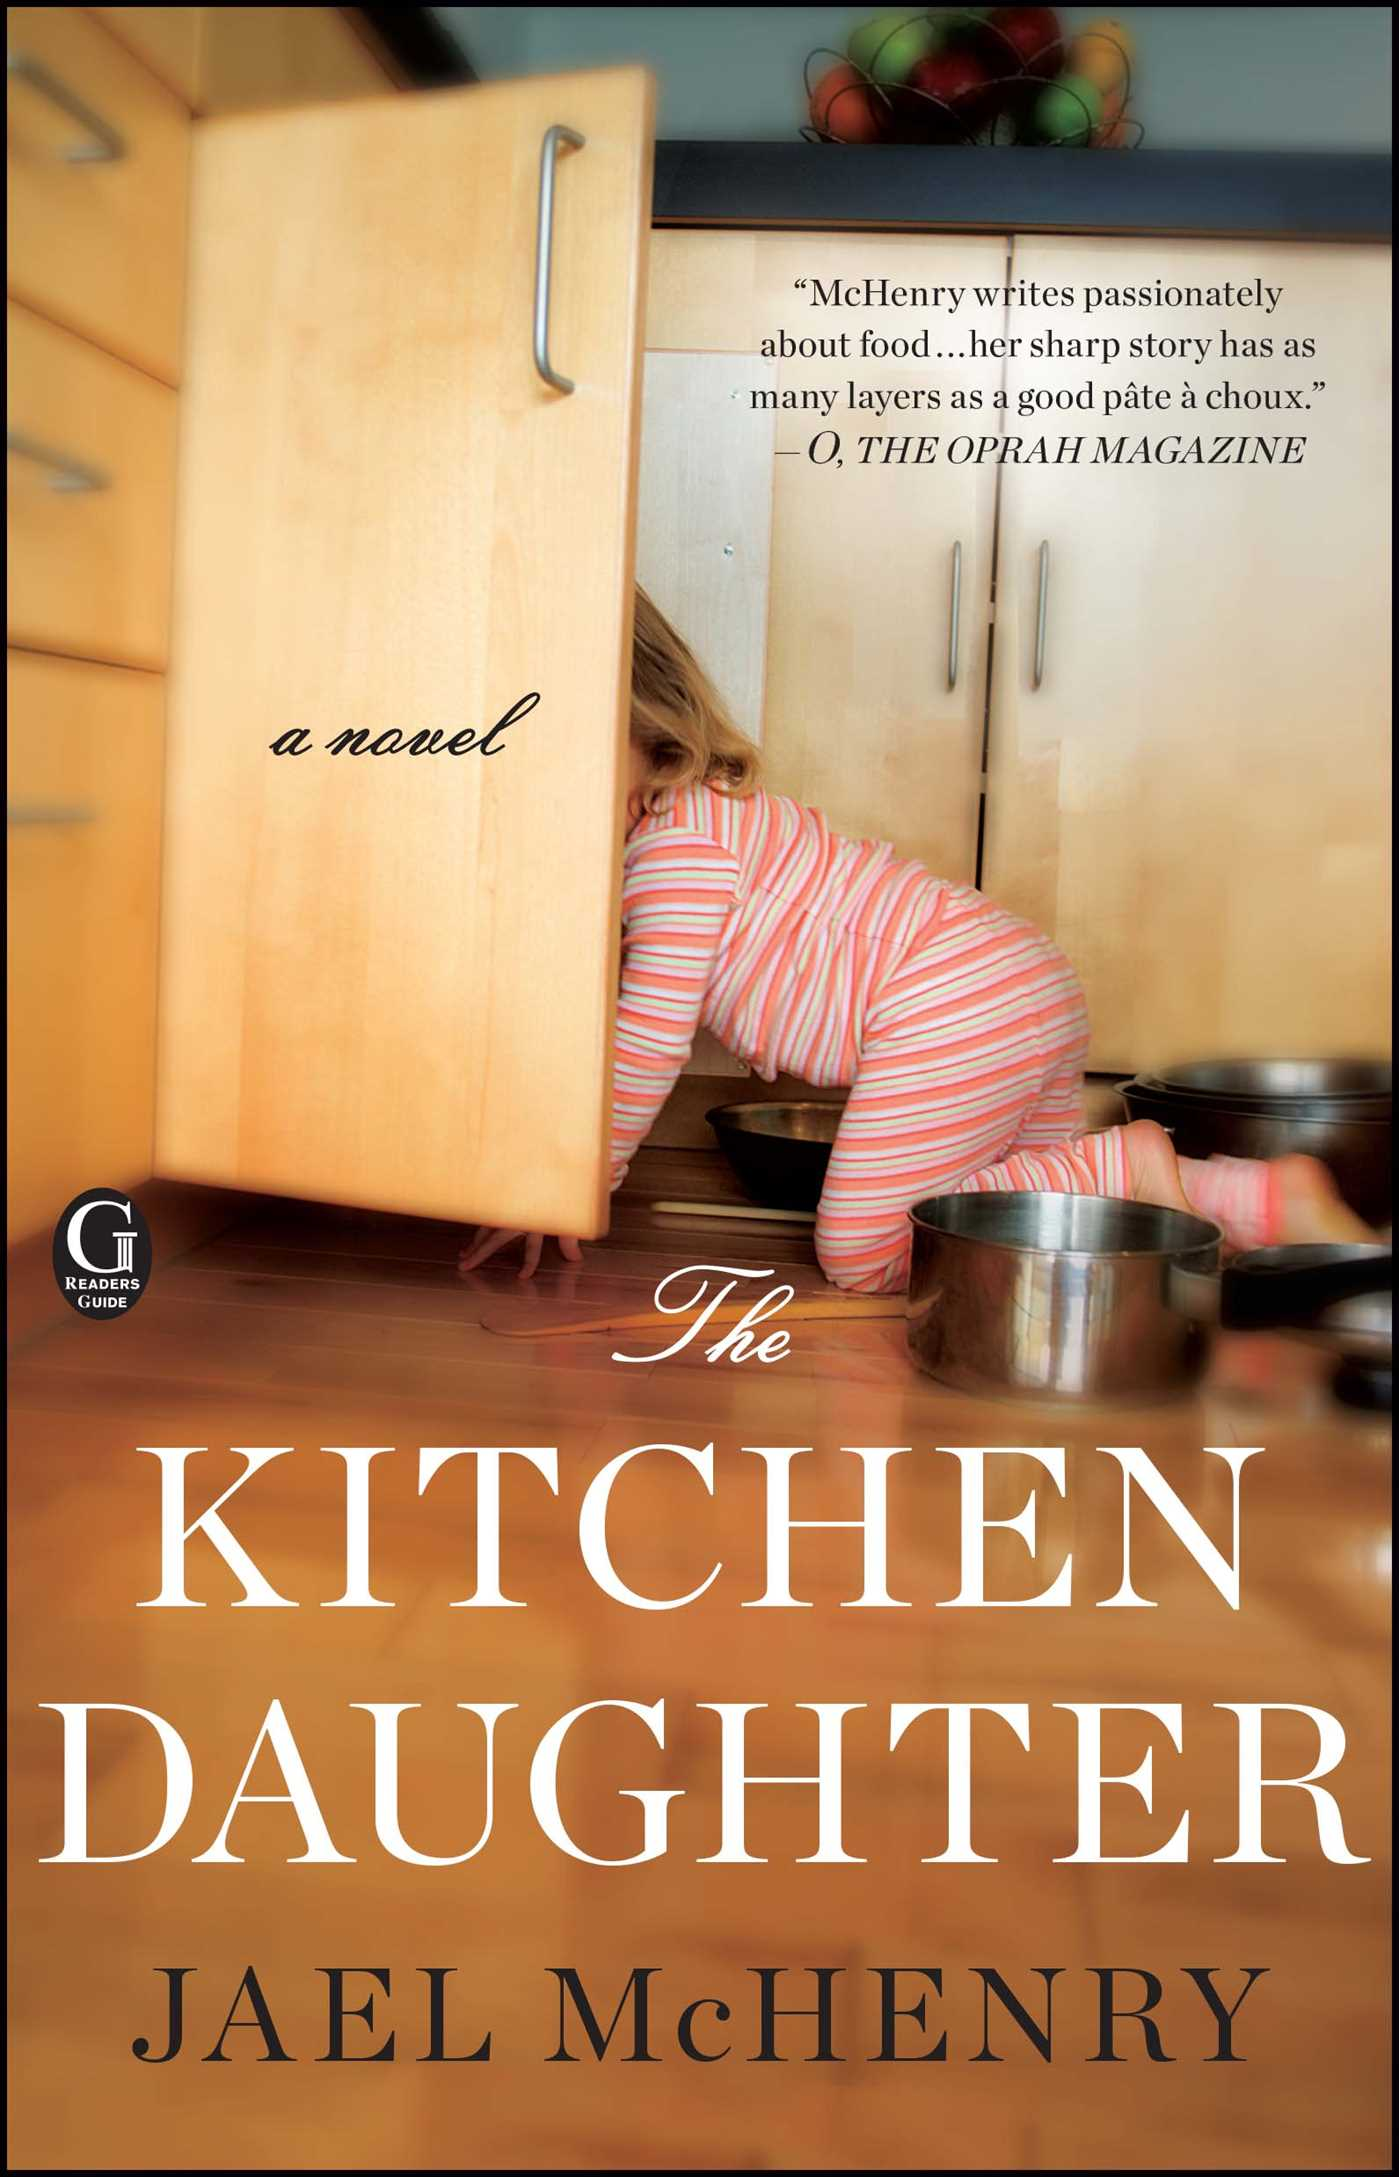 The kitchen daughter 9781439191965 hr